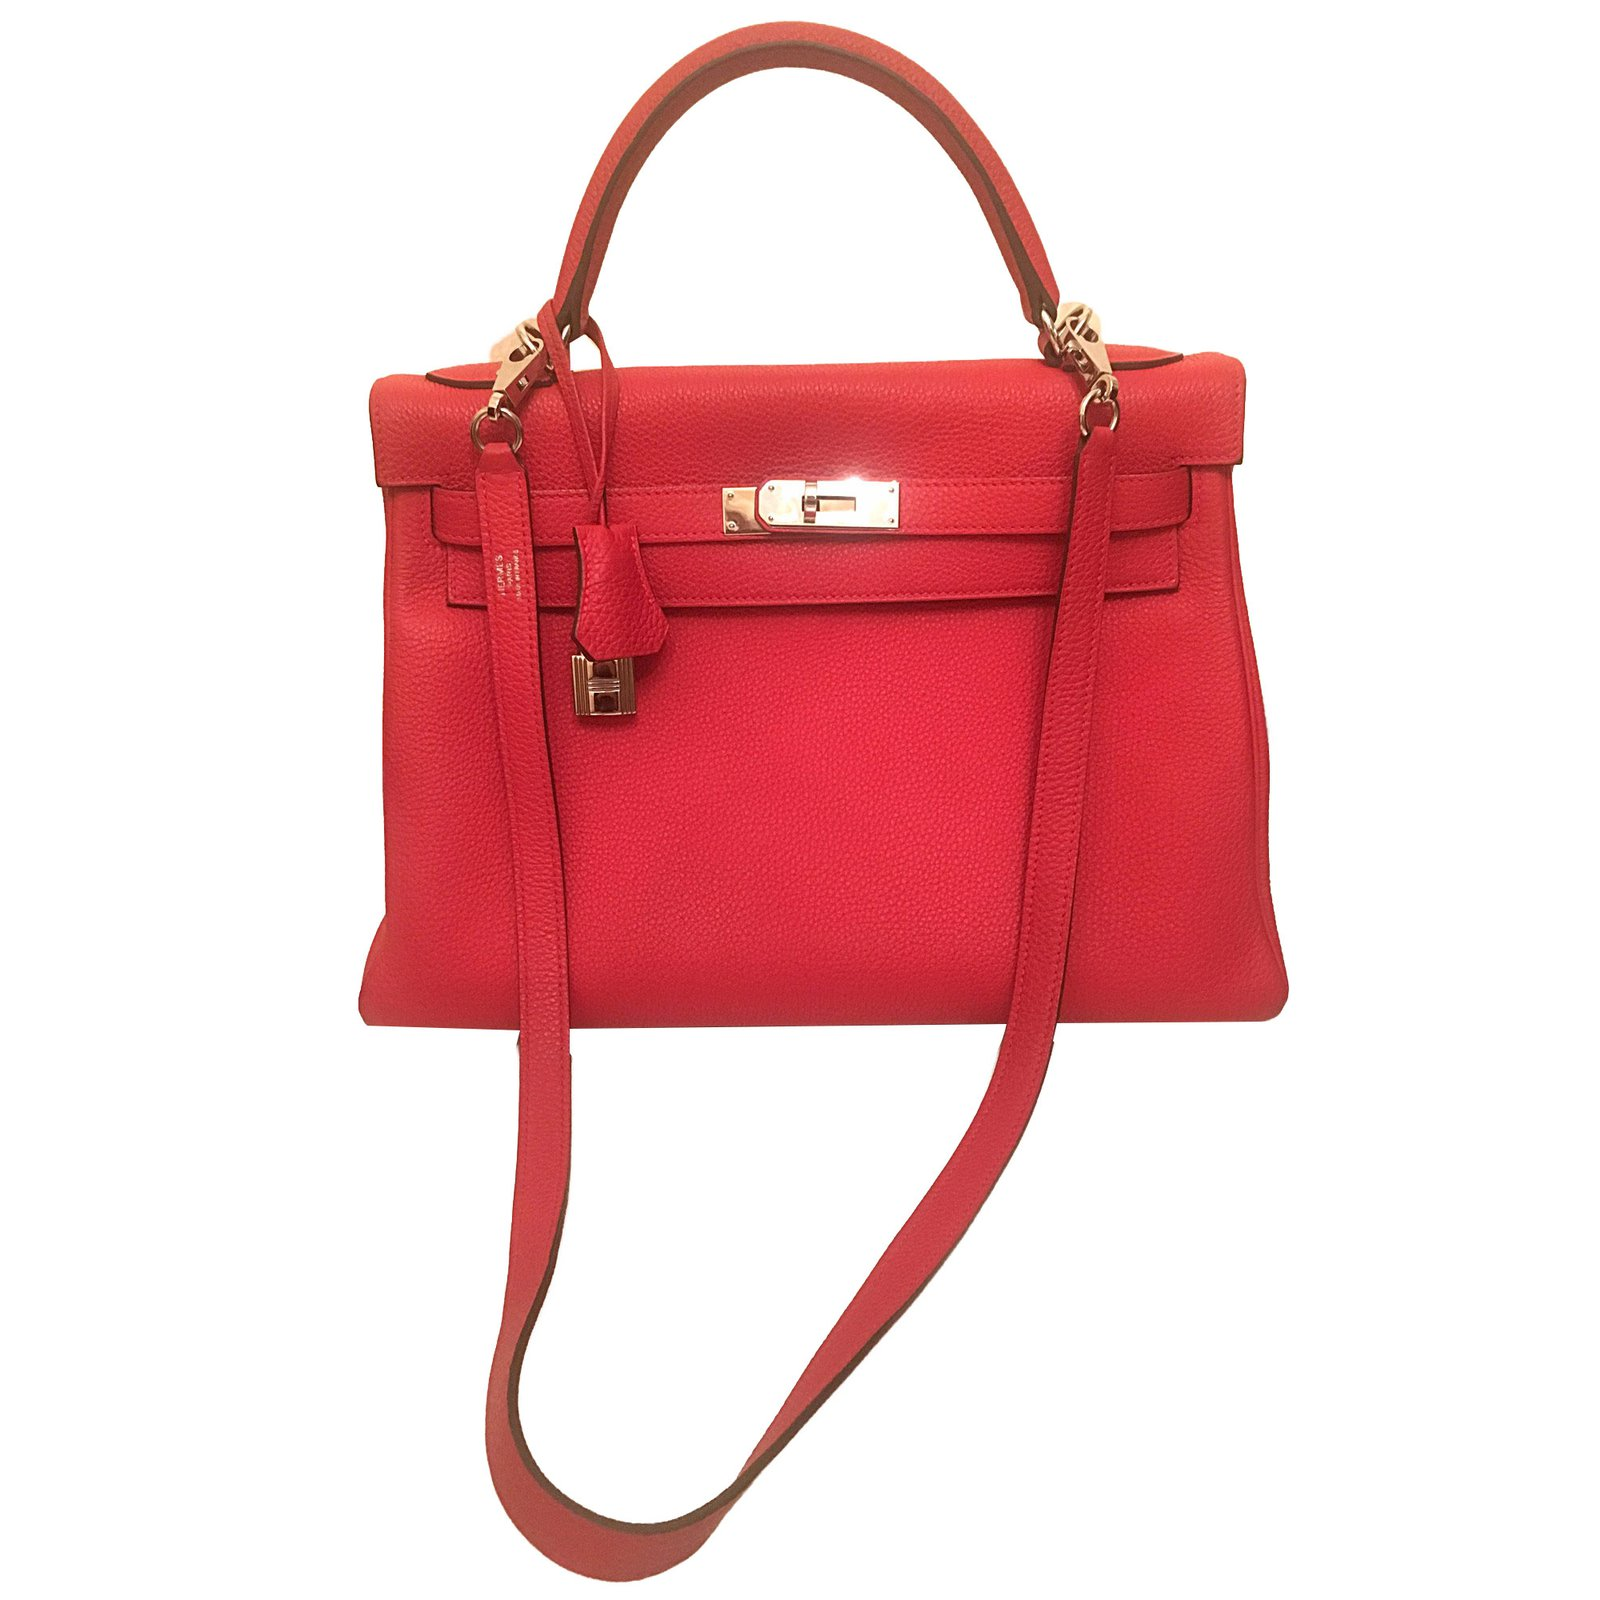 4f08e3ec7ced ... authentic hermès hermes kelly 28 rouge togo handbags leather red ref.40213  f70b5 e5cde